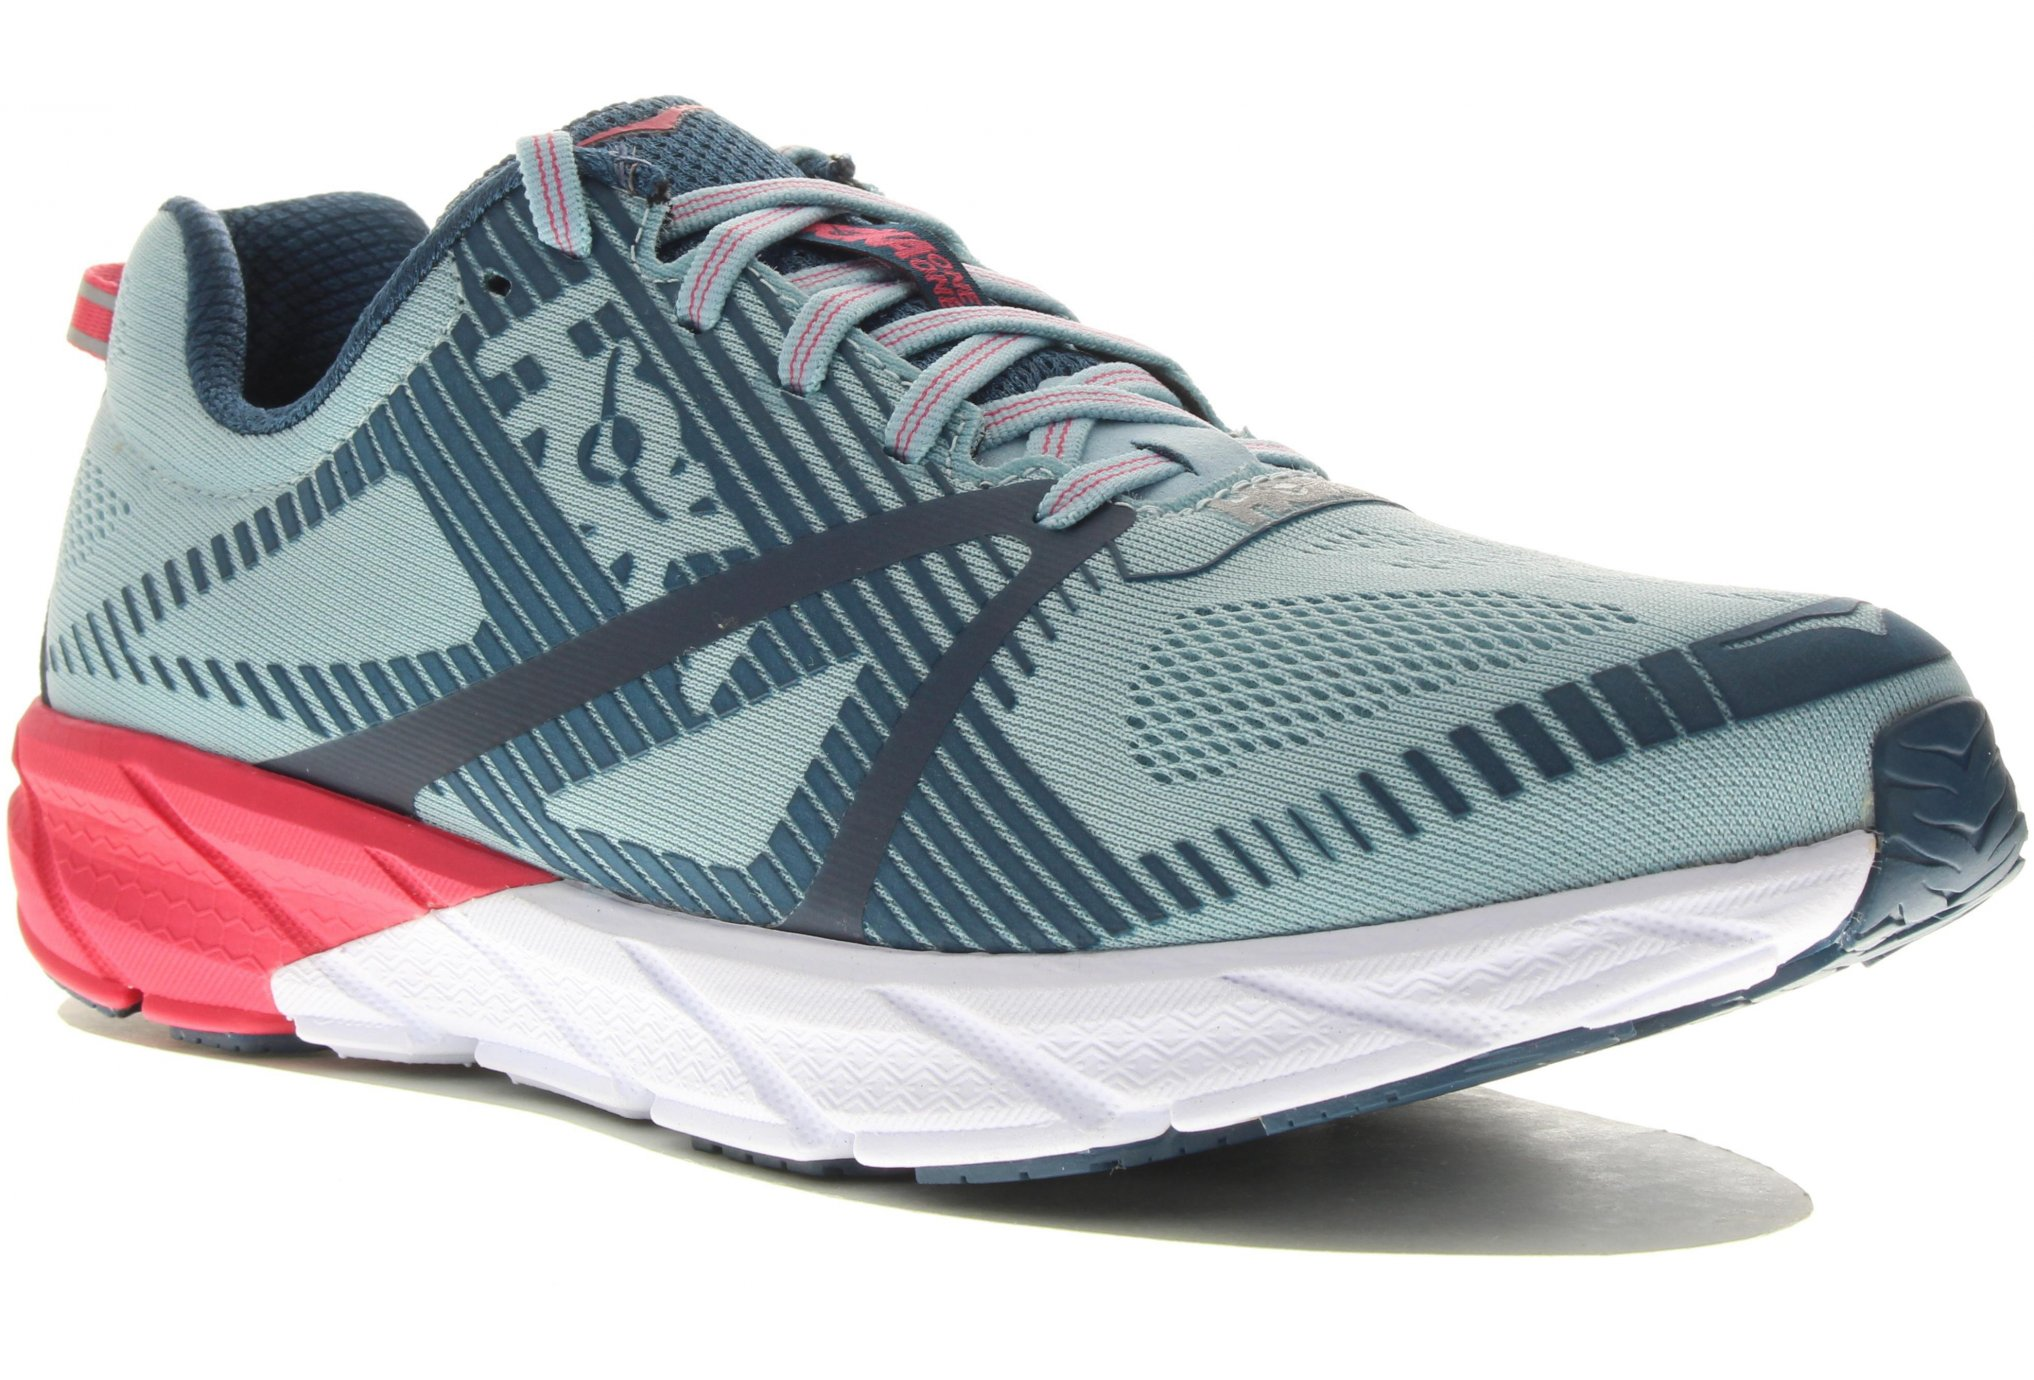 Hoka One One Tracer 2 Chaussures running femme